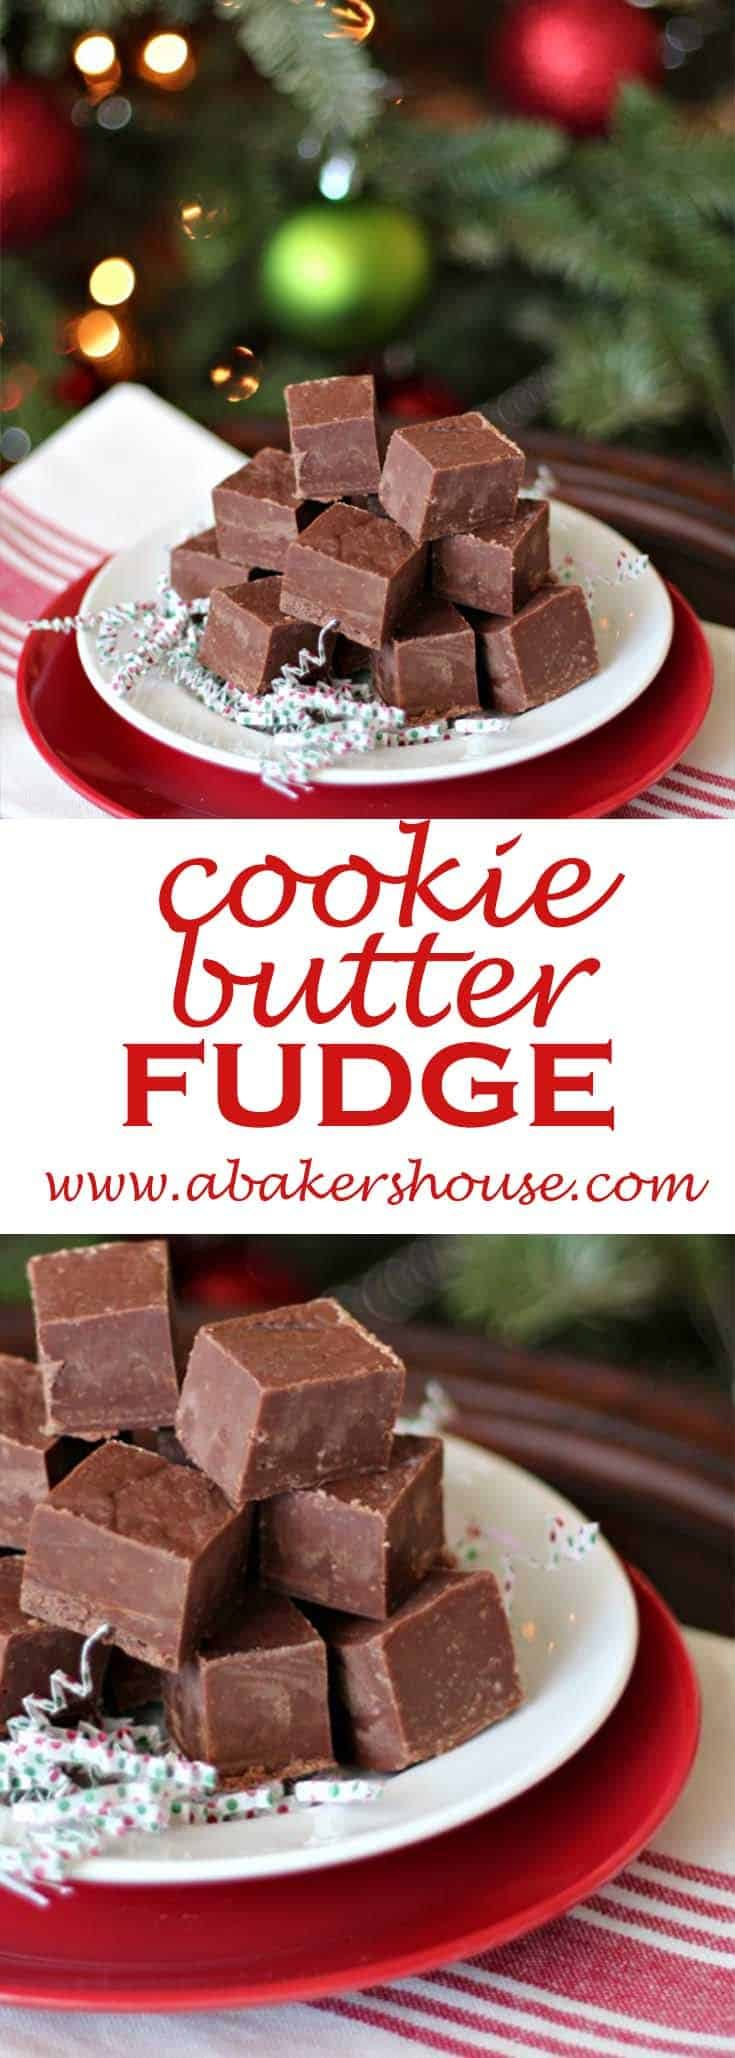 Take a favorite Trader Joe's ingredient of COOKIE BUTTER and make this yummy cookie butter fudge. #homemadegift #Christmas #holiday #abakershouse #fudge #cookiebutter